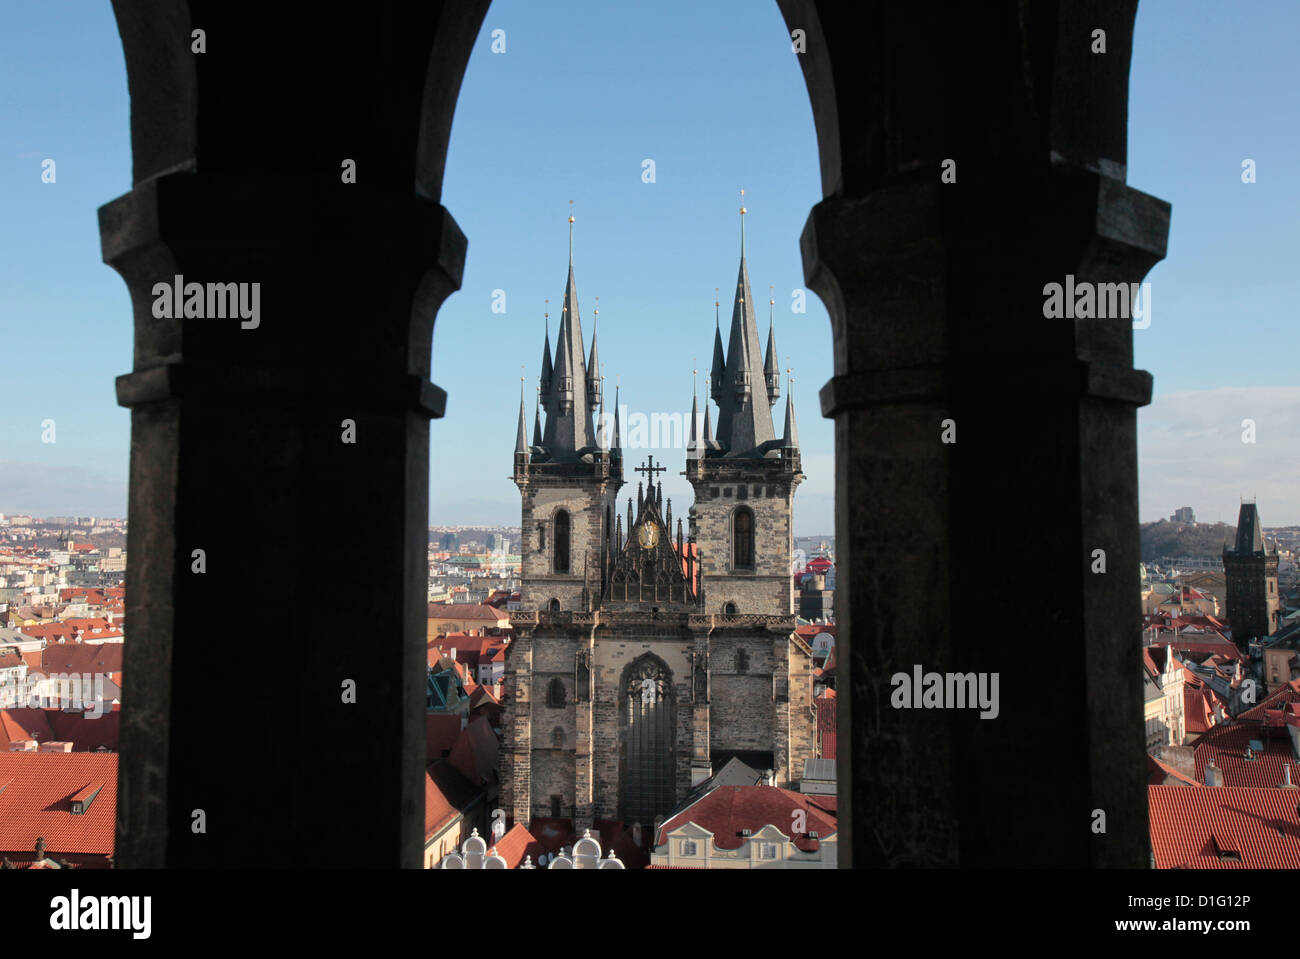 L'église de Tyn sur la place de la Vieille Ville, Prague, République Tchèque, Europe Photo Stock